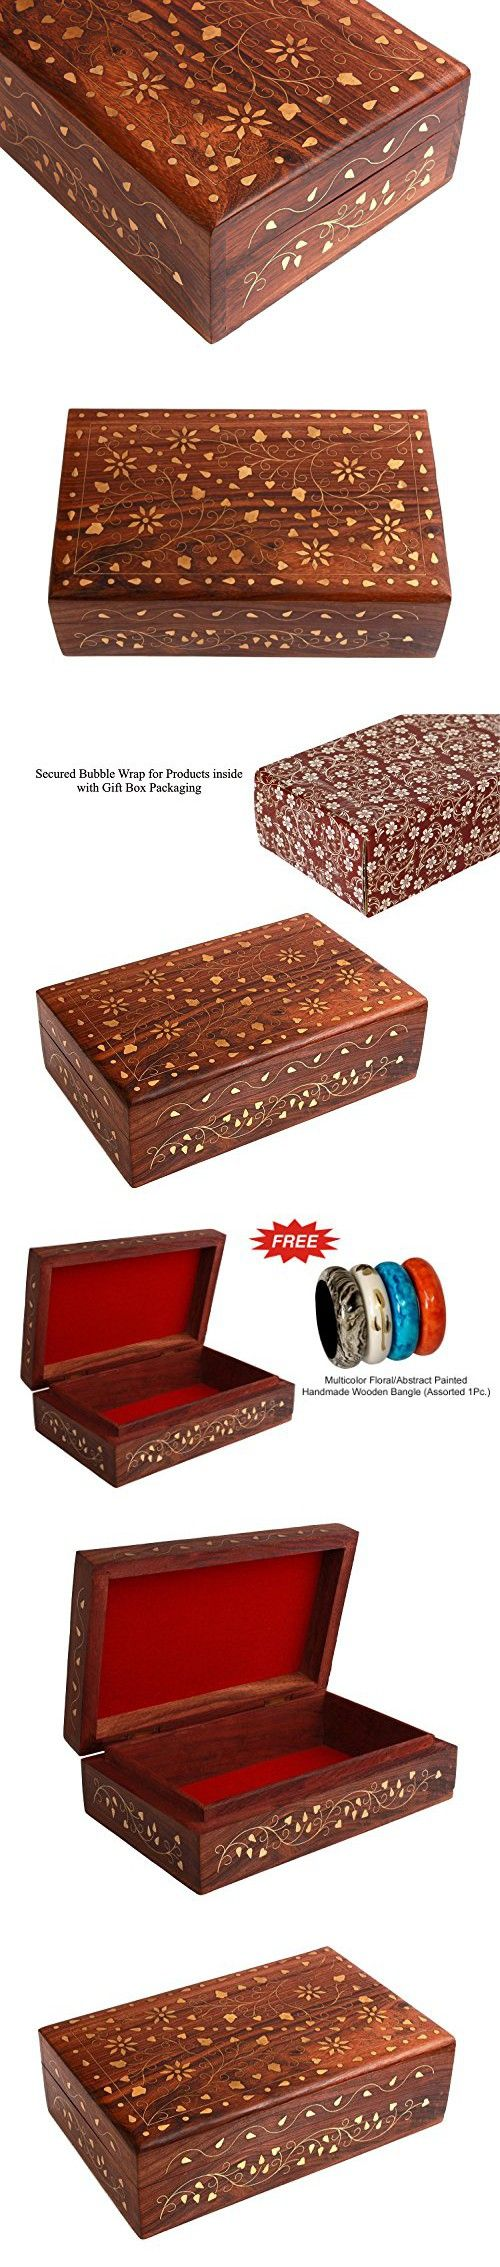 Rakhi Gift for Sister Gorgeous Wooden Jewelry Box Organizer Keepsake Storage Chest - Home Decorative with Brass Inlay